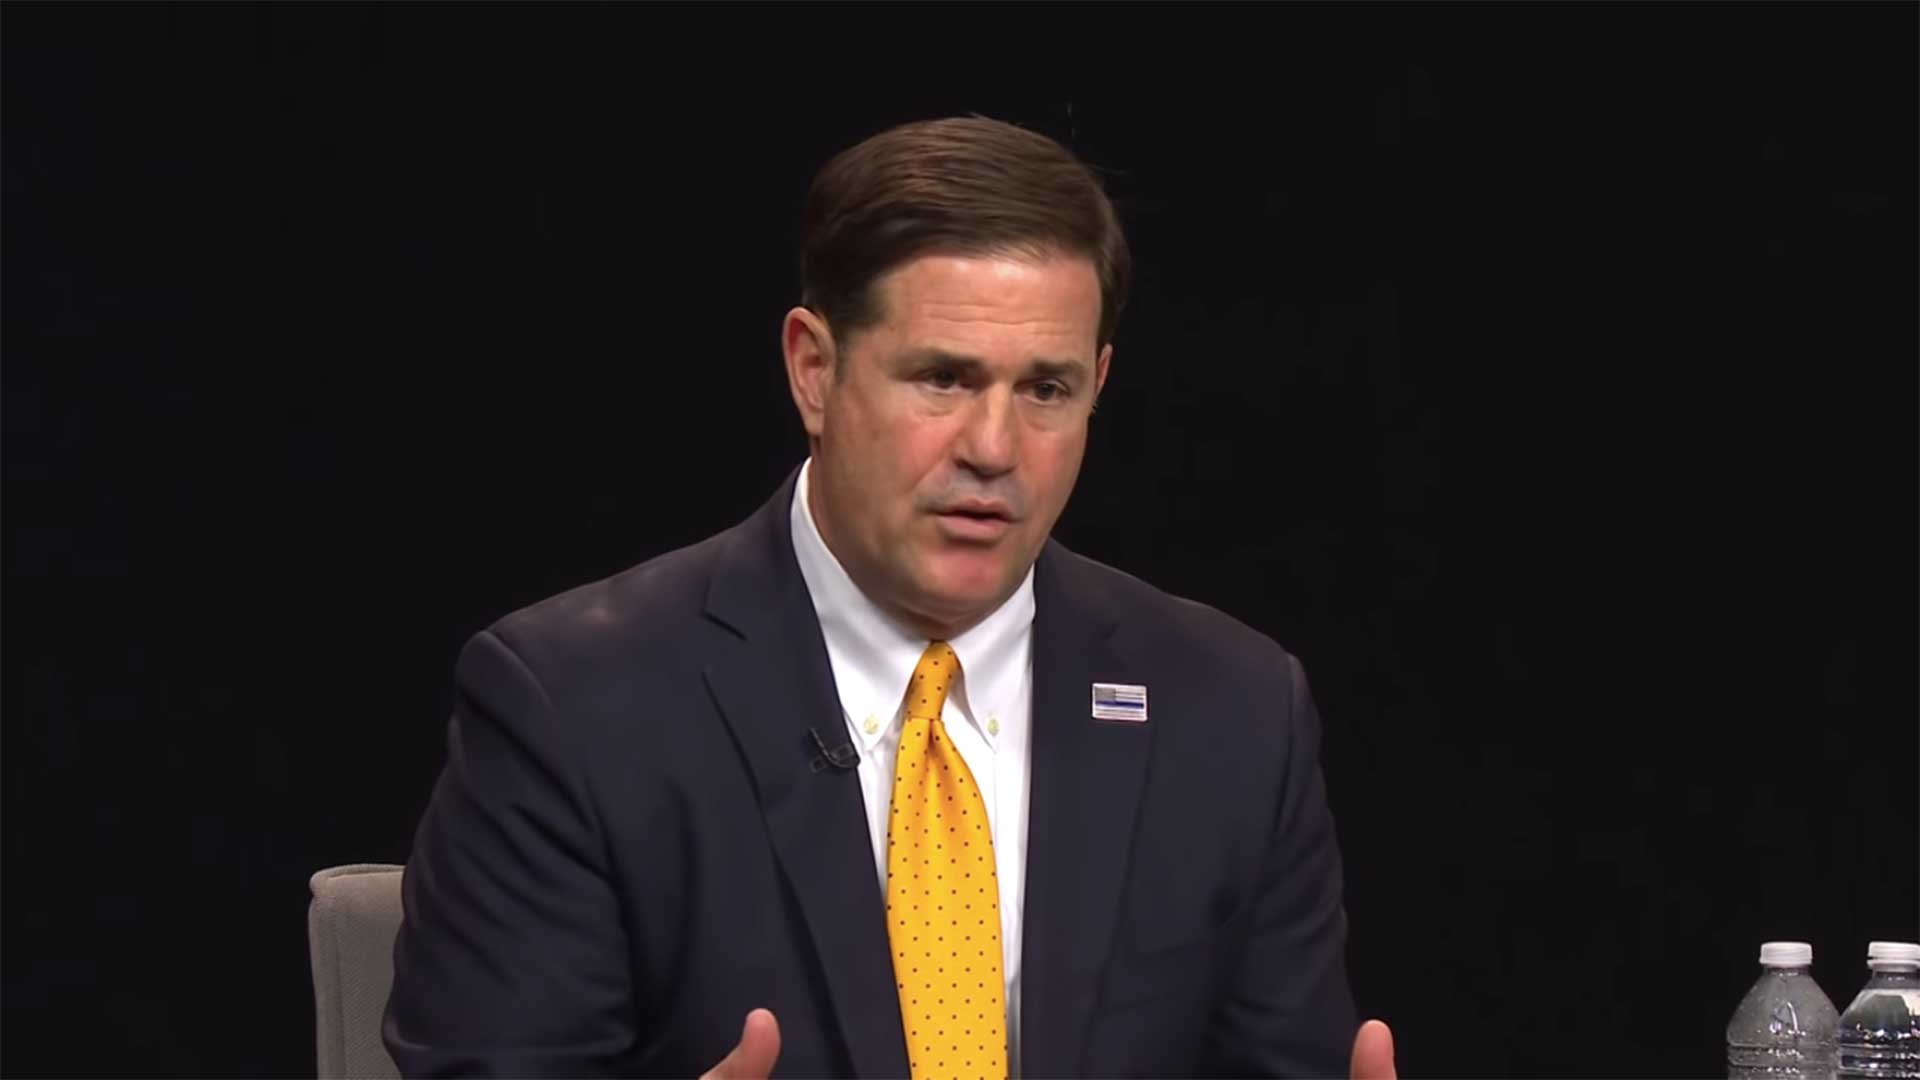 Arizona Gov. Doug Ducey at an April 2 town hall on the COVID-19 pandemic.